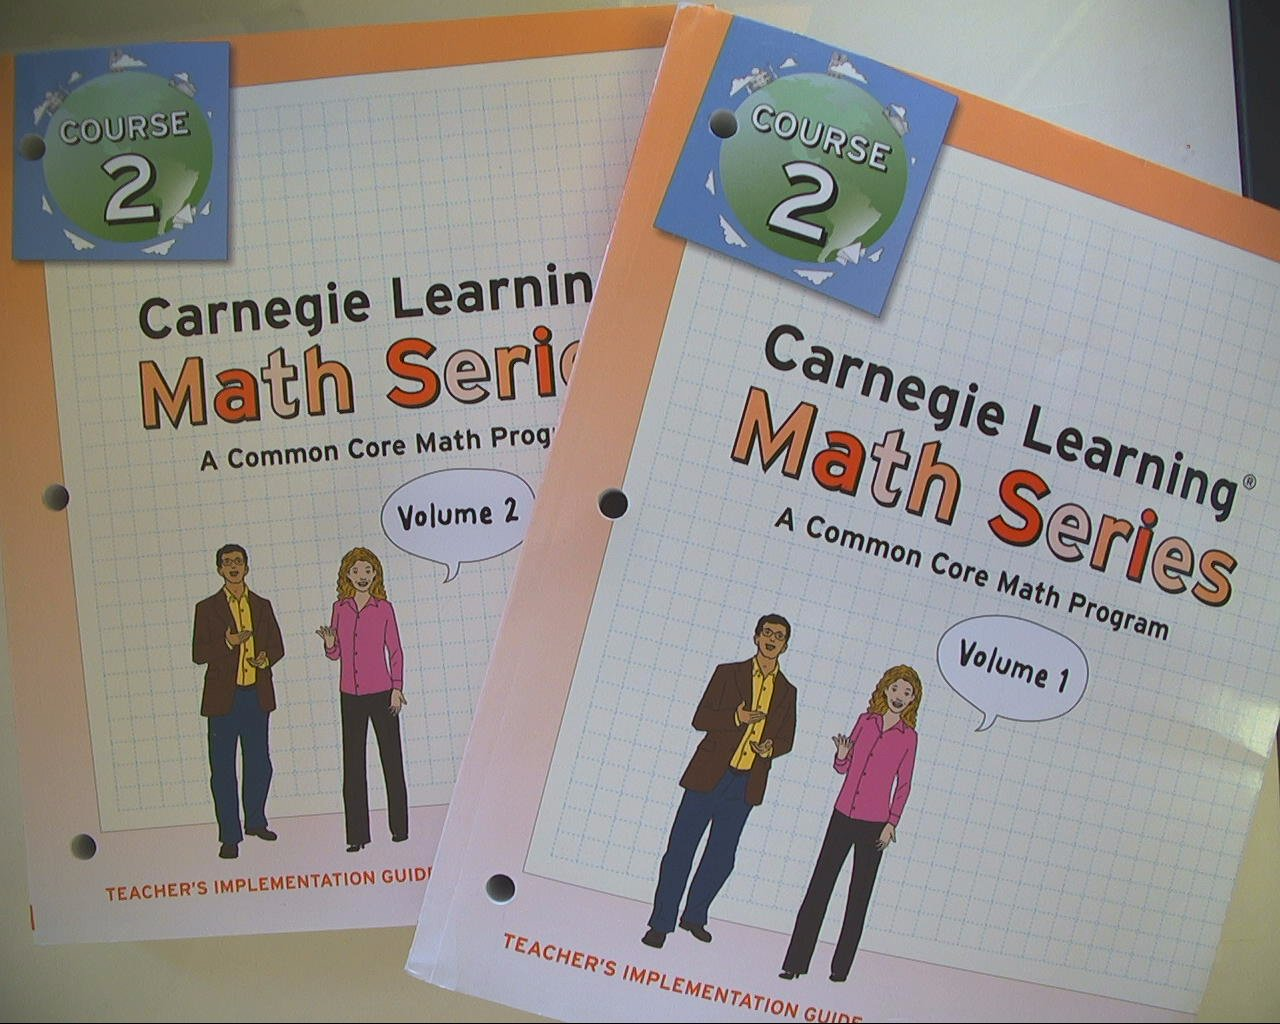 Download Carnegie Learning, Math Series, Course 2, Teacher's Implementation Guide, a Common Core Math Program, Volume 1 and 2 Isbn 9781609721459 pdf epub